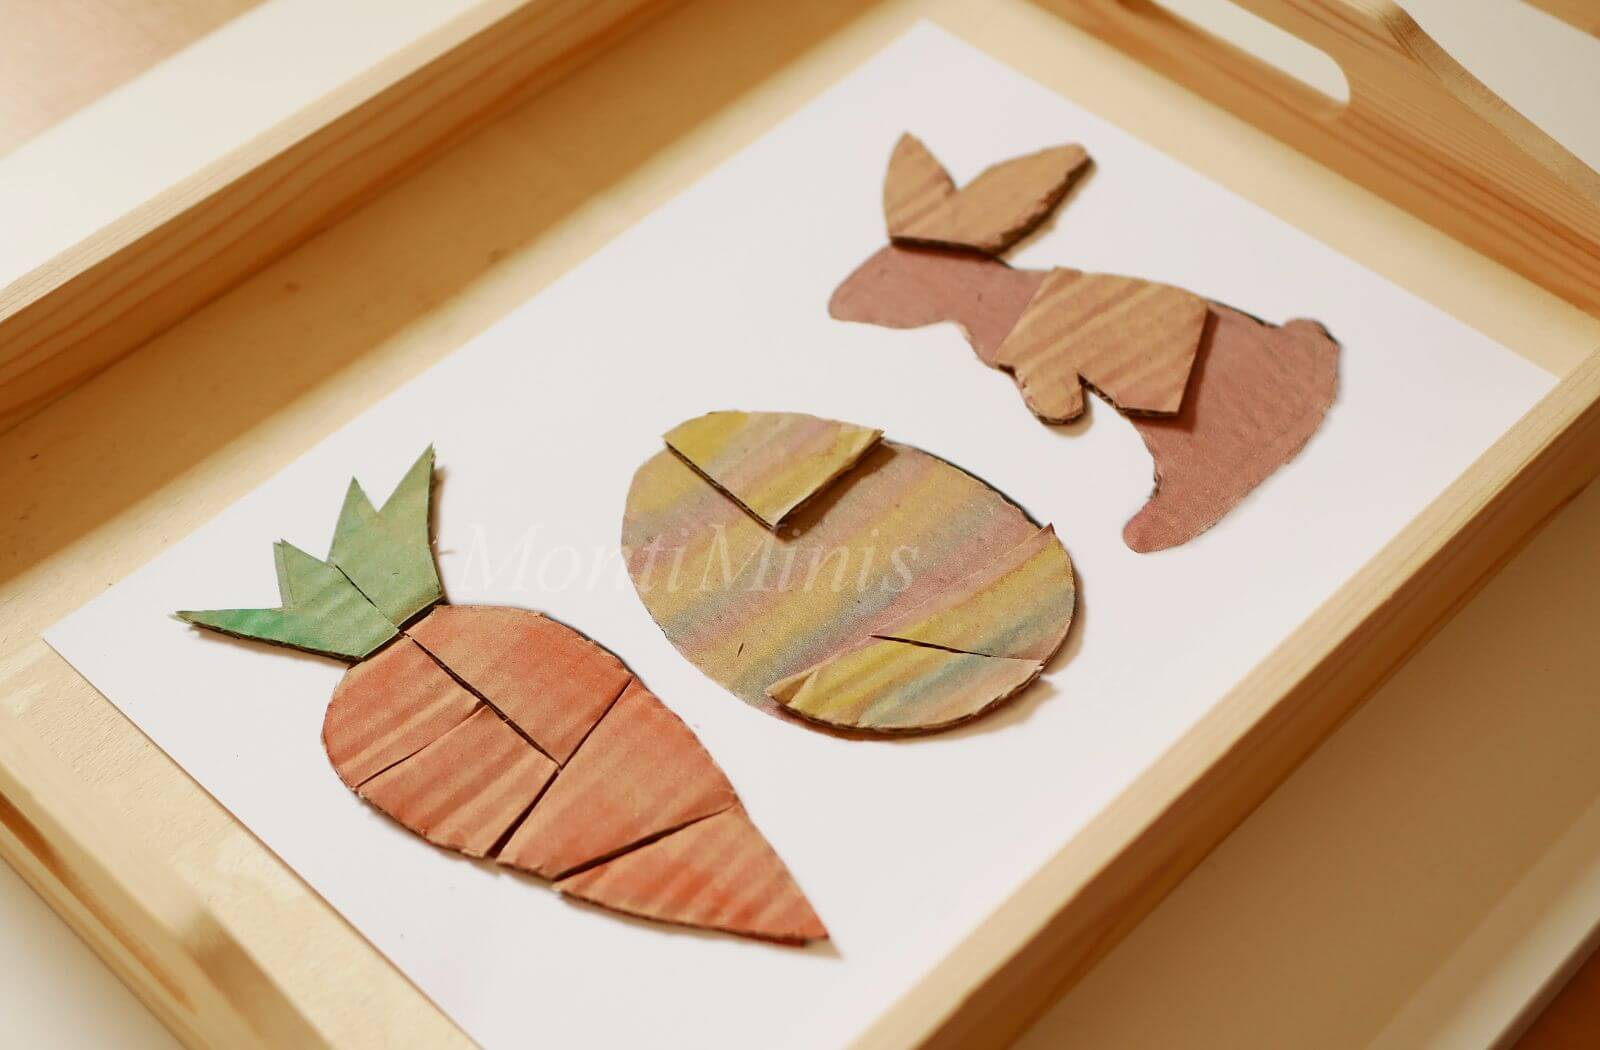 Upcycling-Spielidee: DIY-Oster-Puzzle aus Pappe